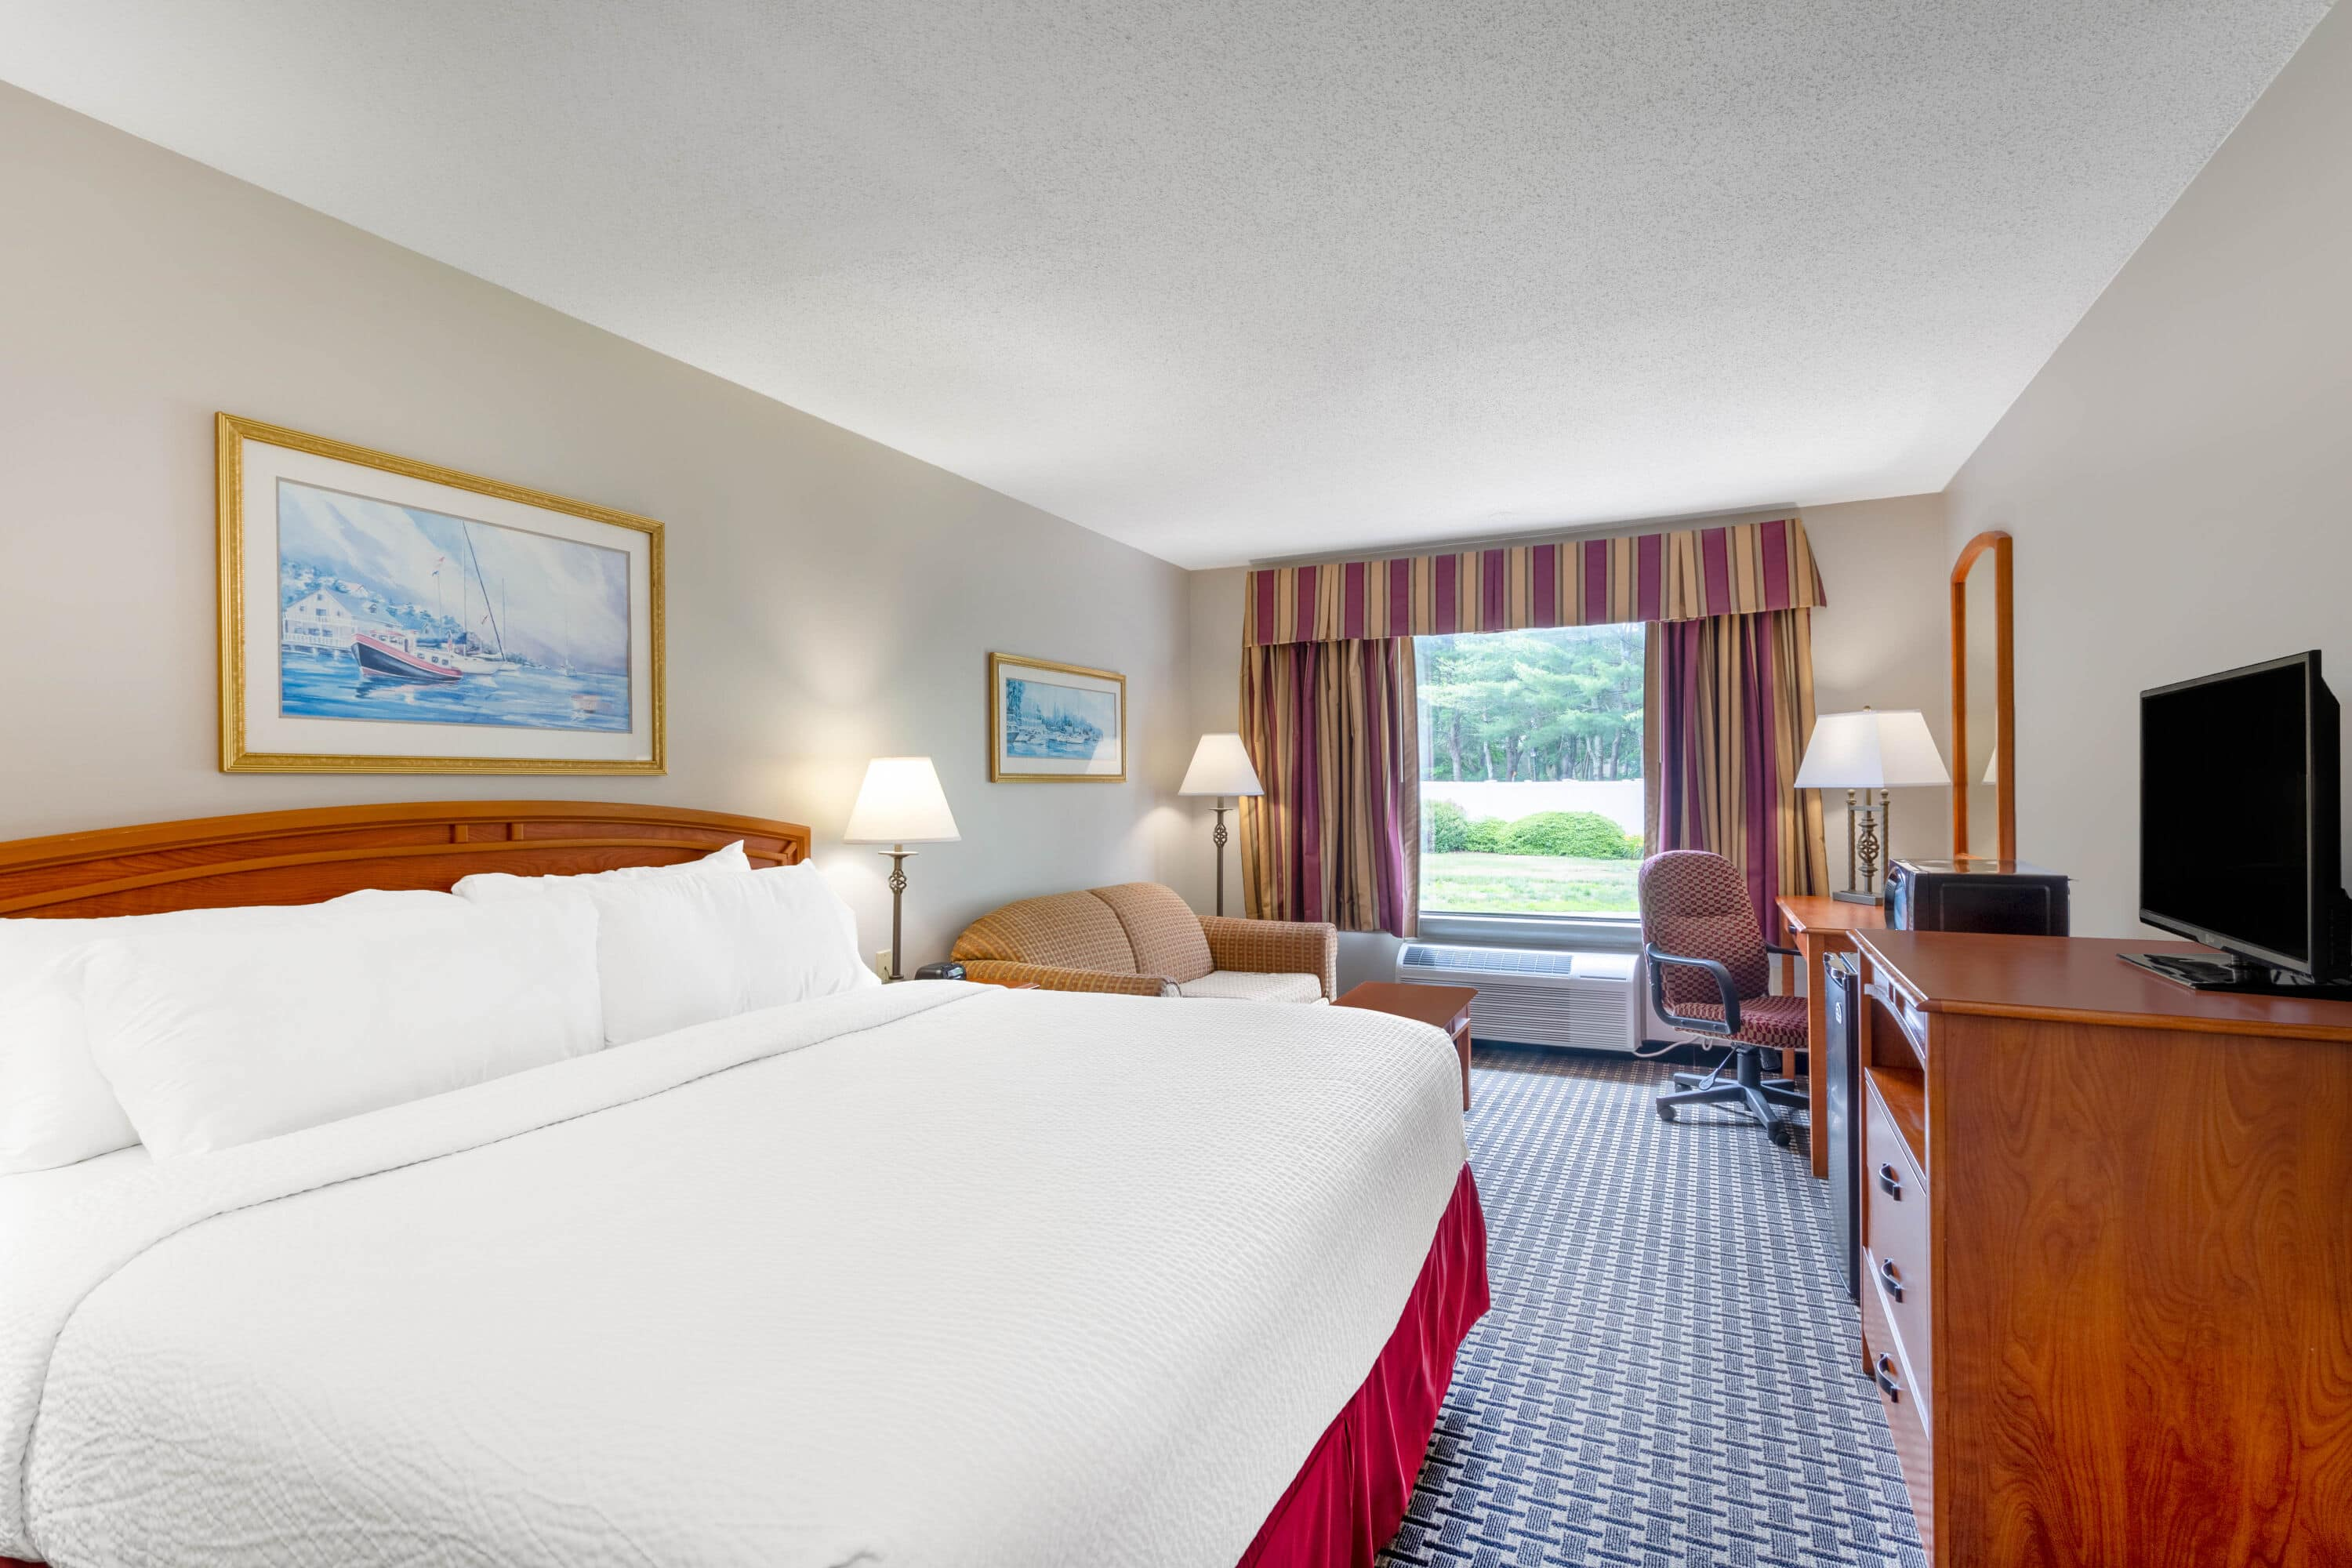 Guest room at the Days Inn - Mystic in Mystic, Connecticut